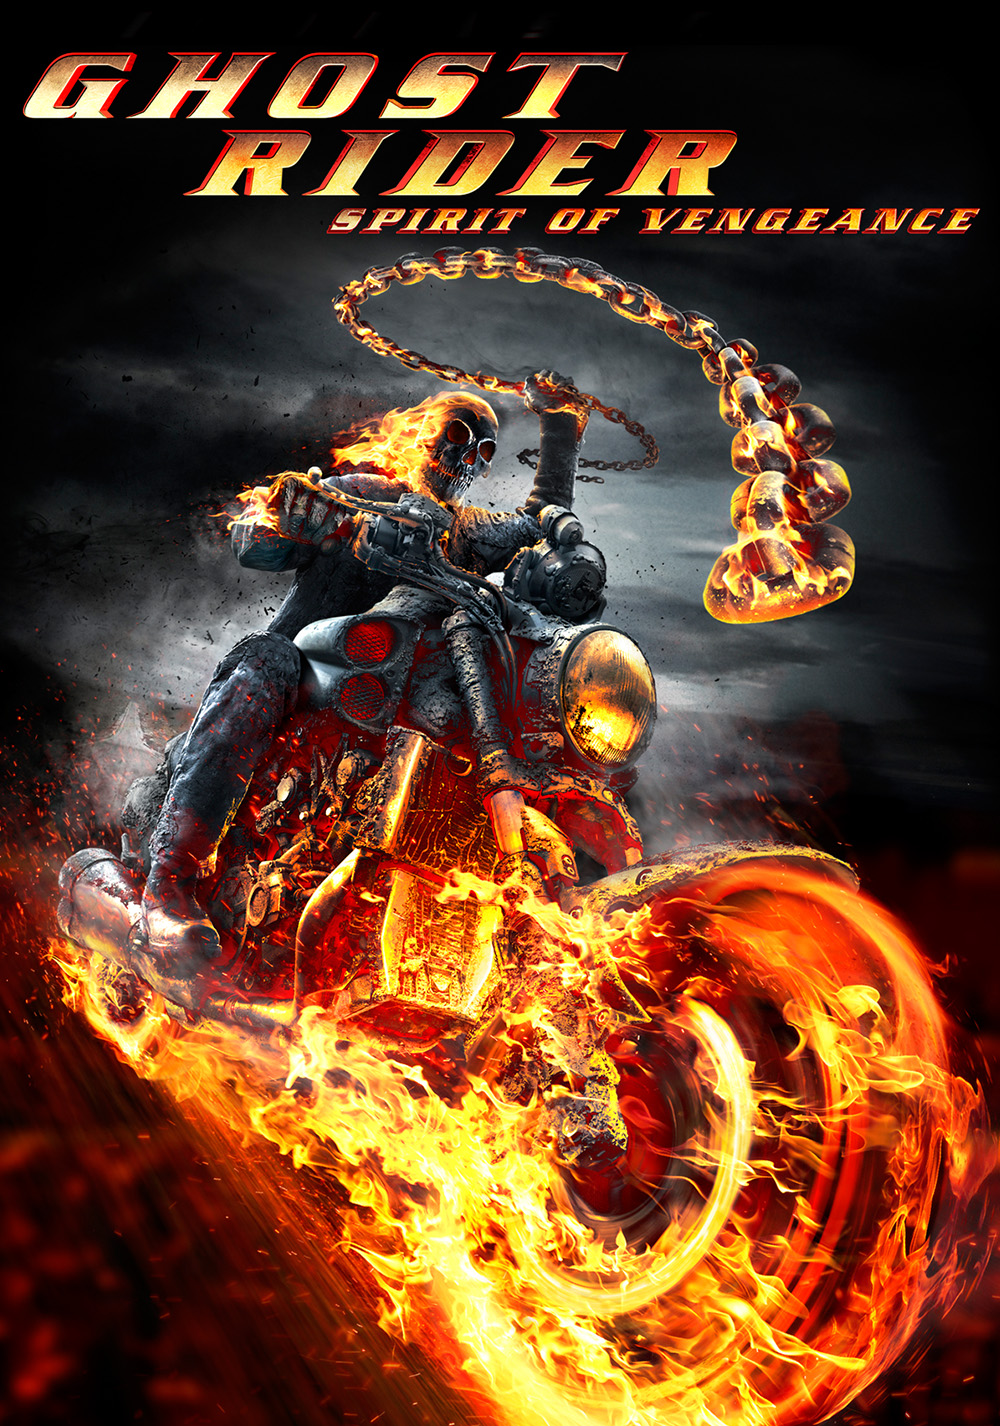 ghost rider 2: spirit of vengeance full movie download | hollywood